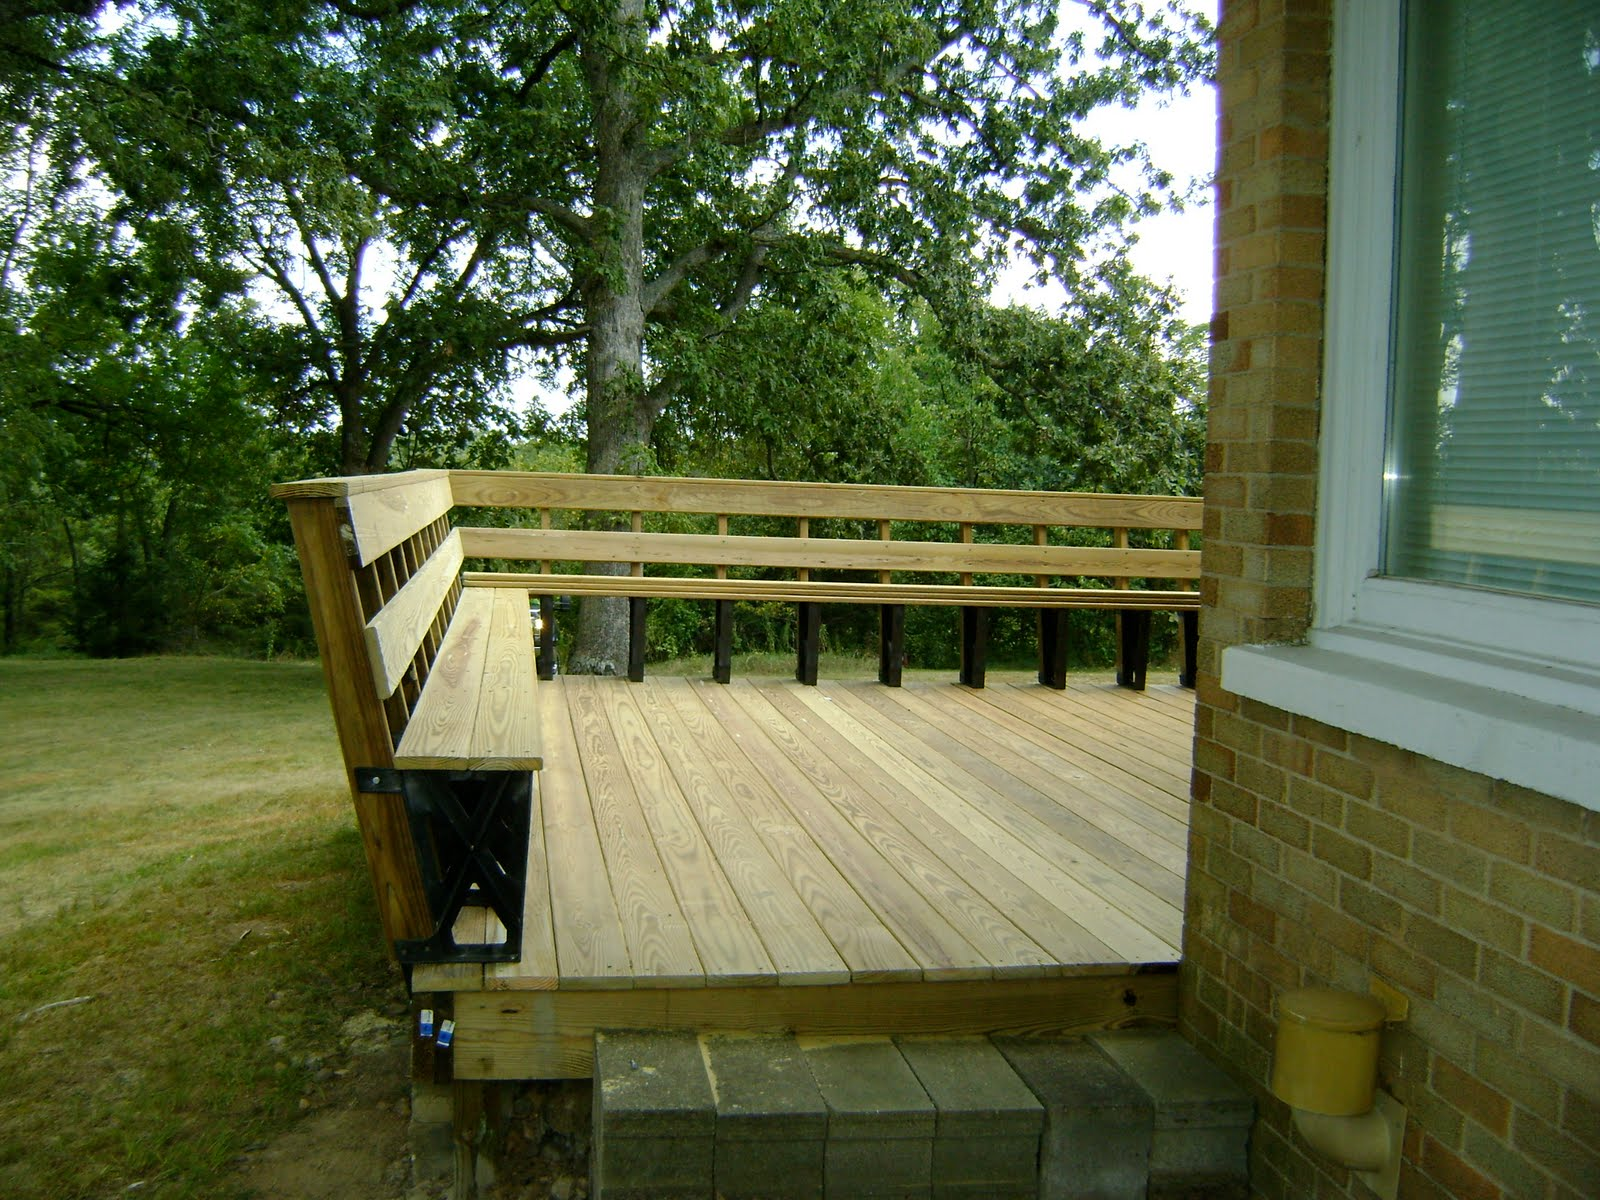 Herman brothers blog shark doves ponds food plots and for Ready made decking frame